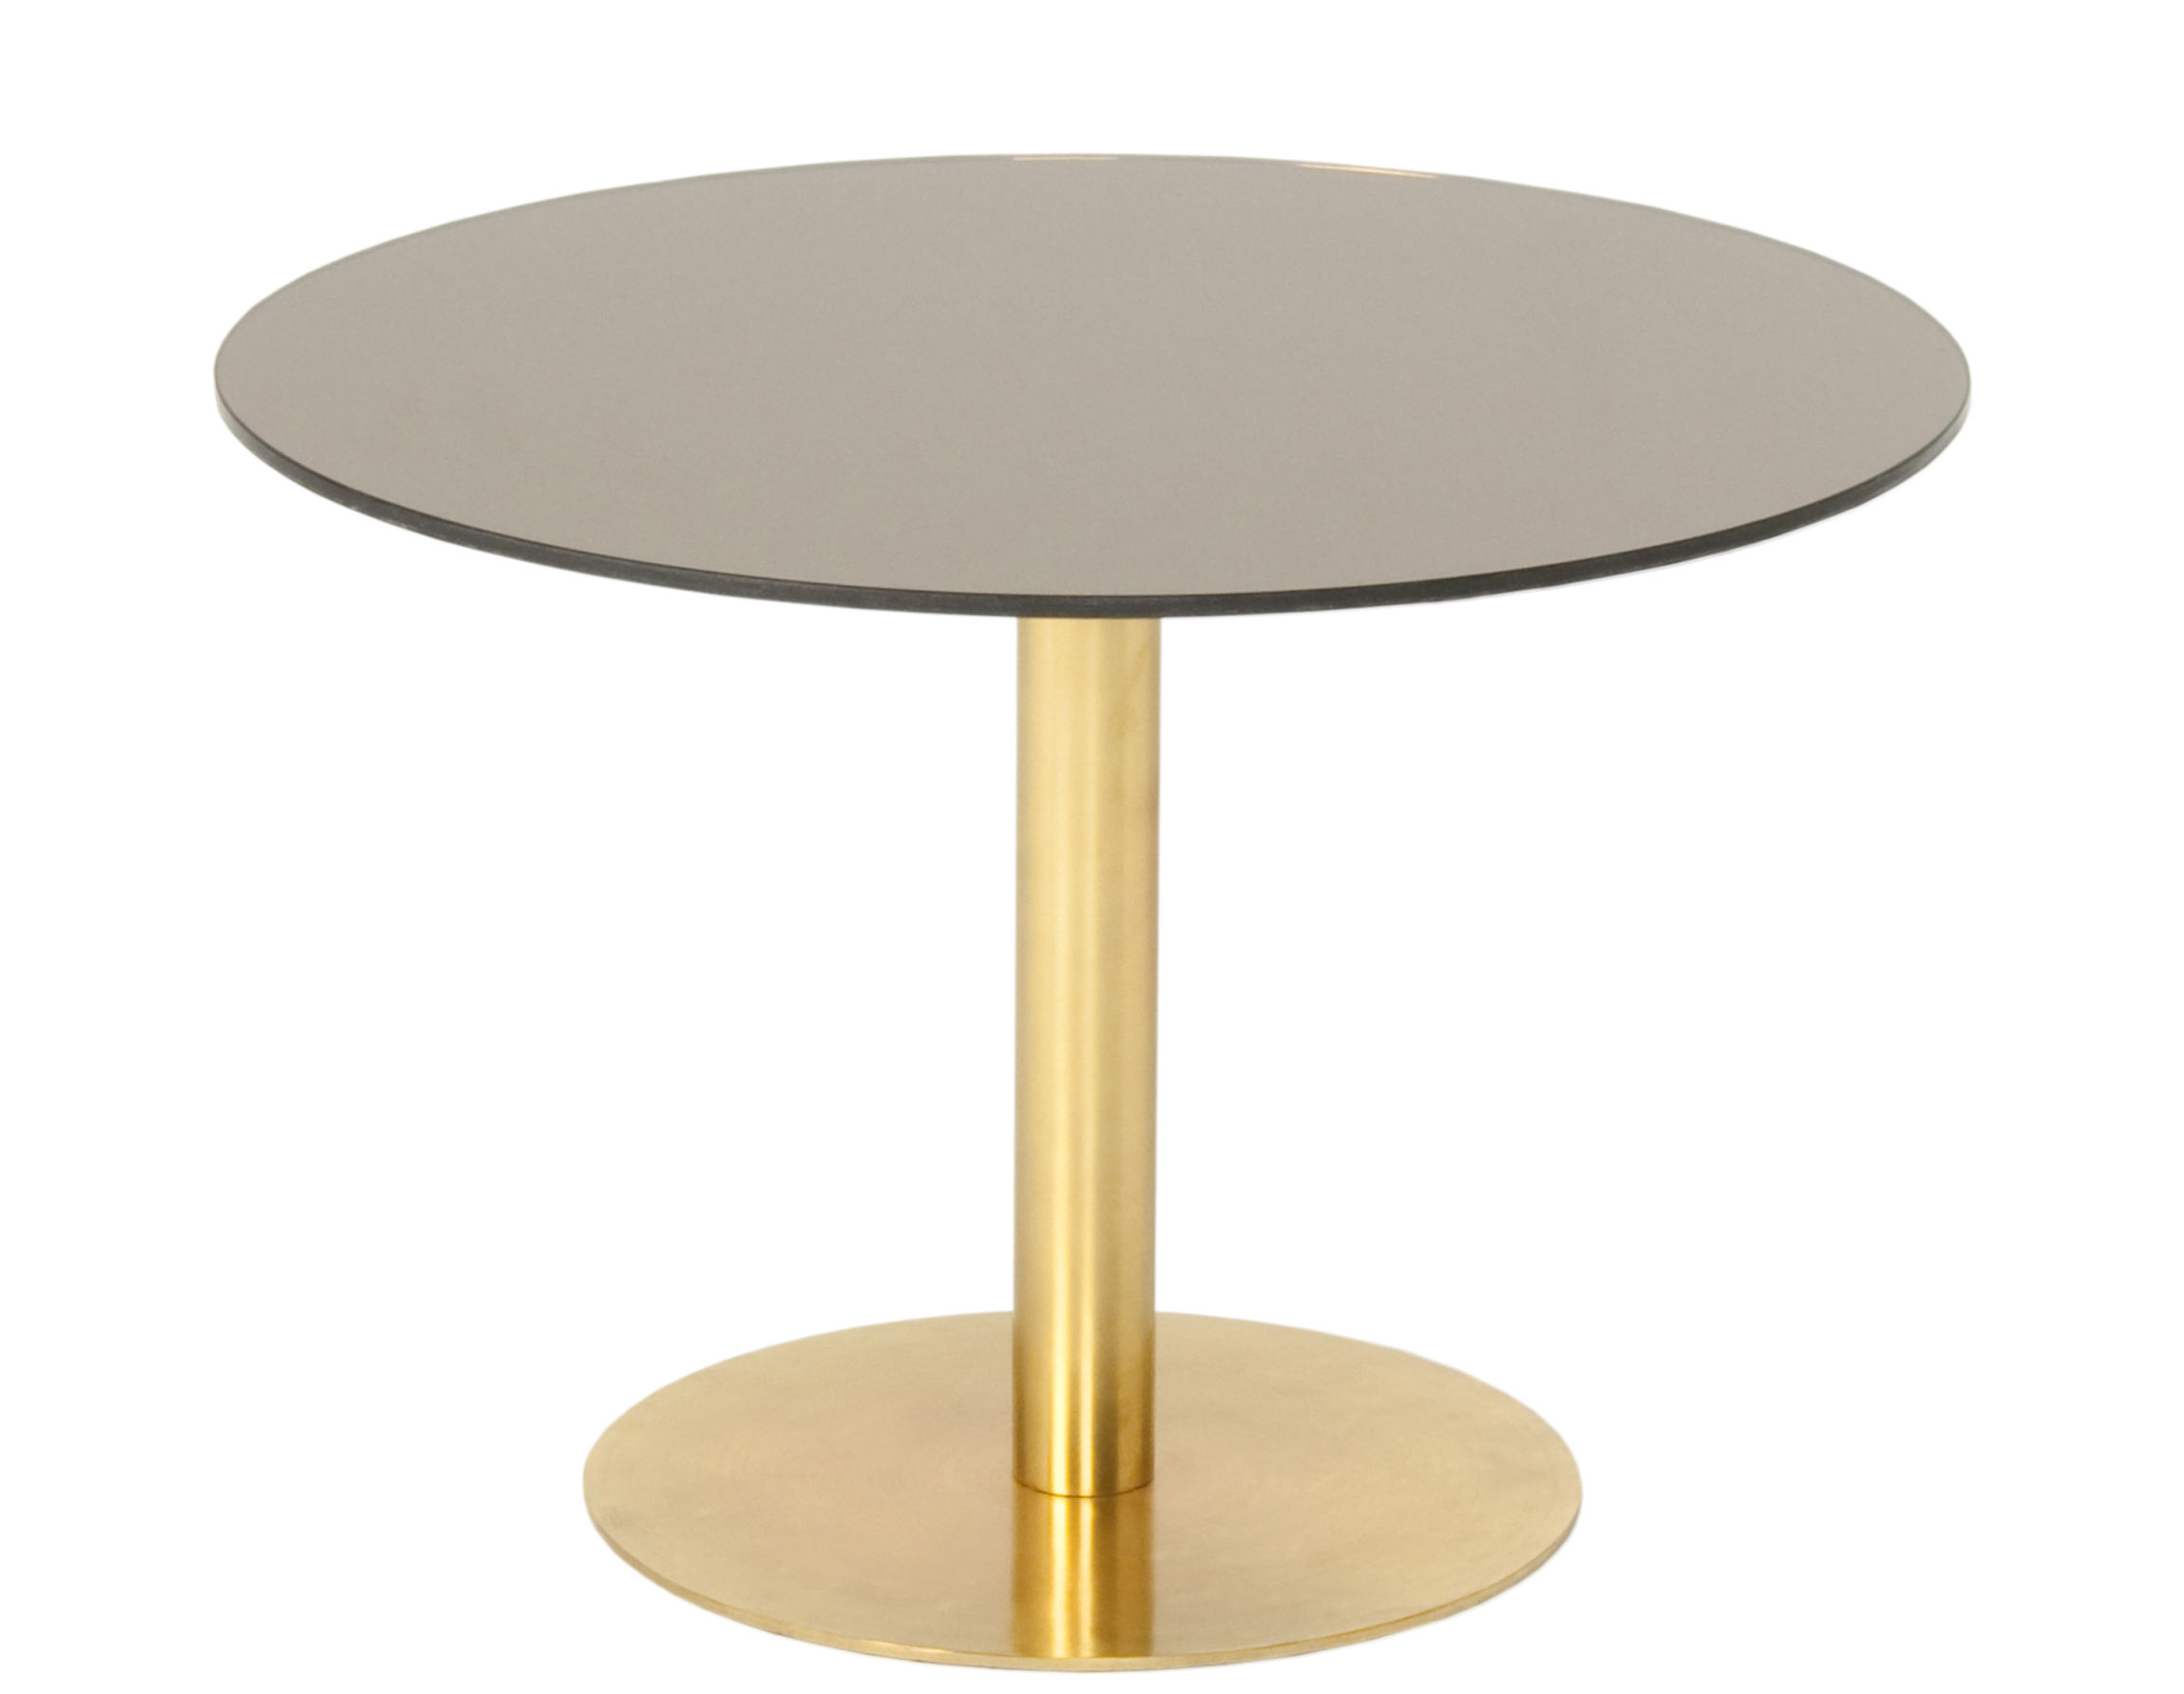 Tom Dixon Couchtisch Couchtisch Flash Von Tom Dixon - Gold/metall | Made In Design